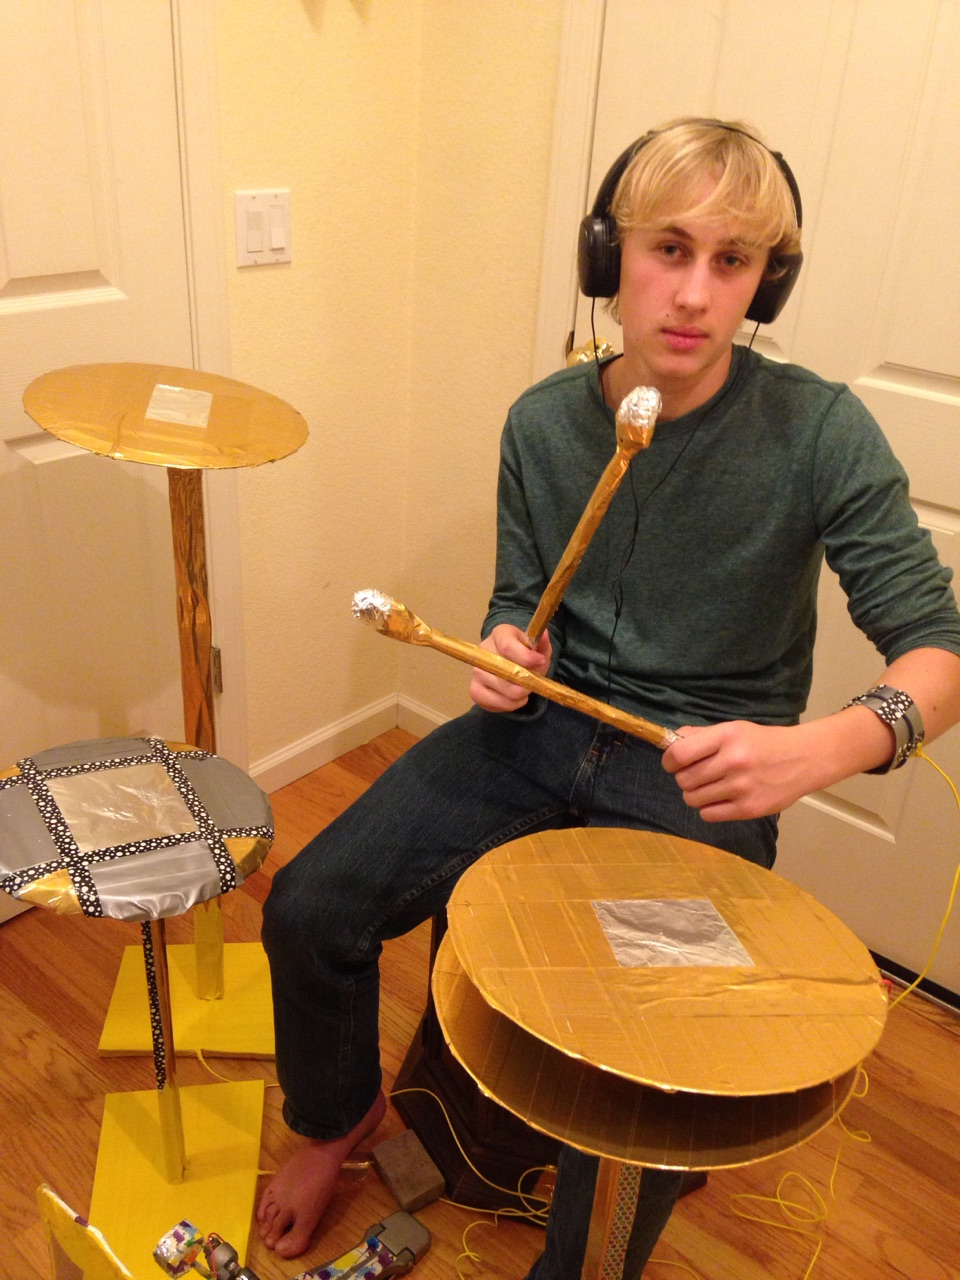 Picture of Life-Sized Electronic Drum Set Using the Makey Makey Development Board